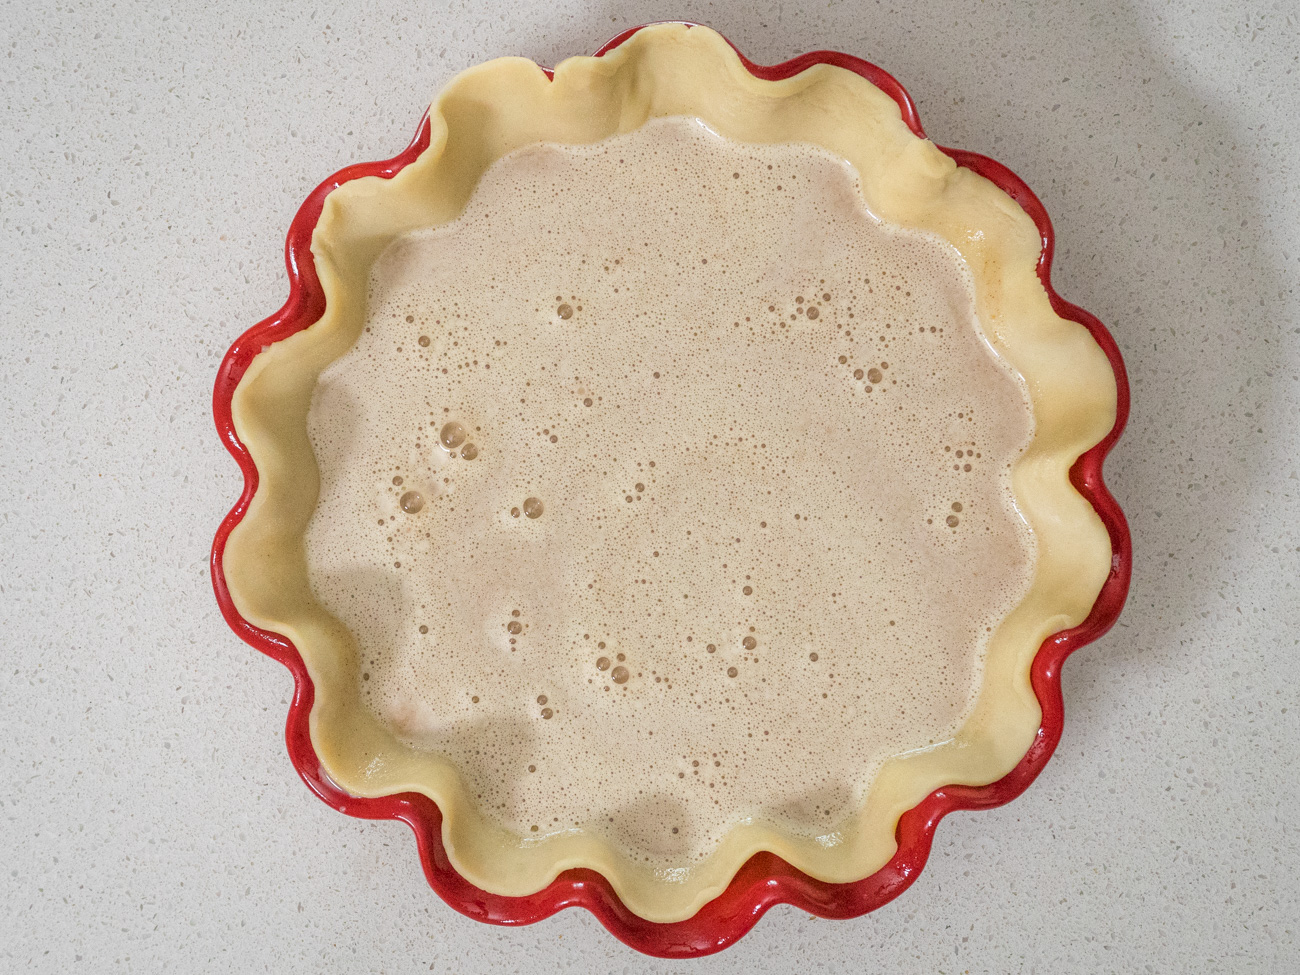 Pour filling into unbaked pie crust, using a spoon to evenly distribute the mixture.